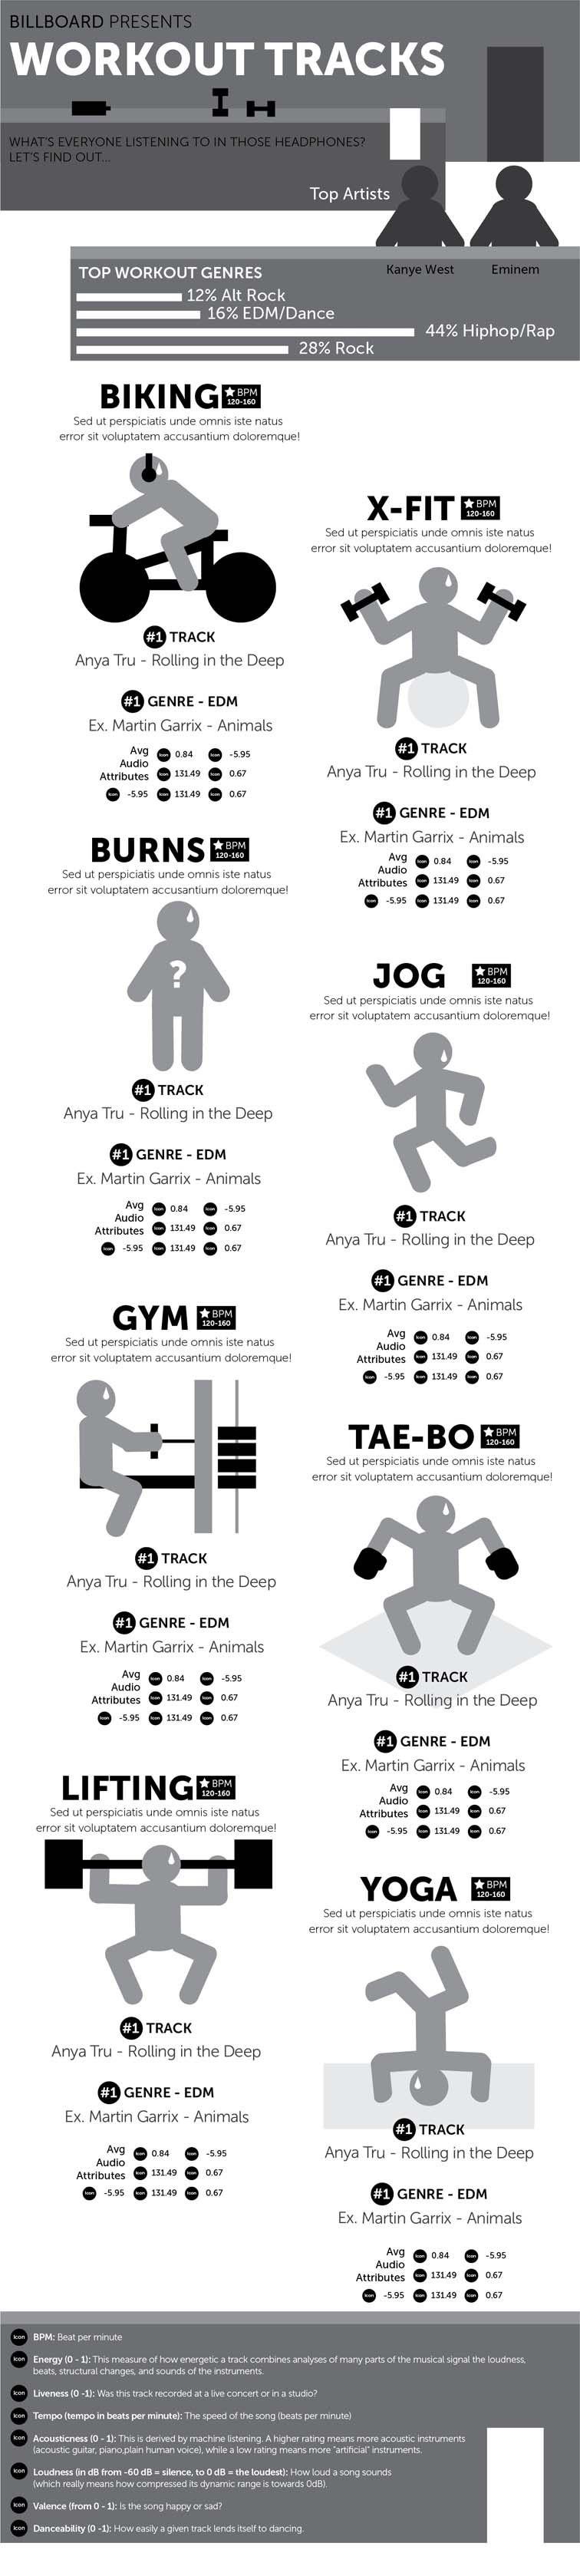 Exercise Playlist Infographic 5661